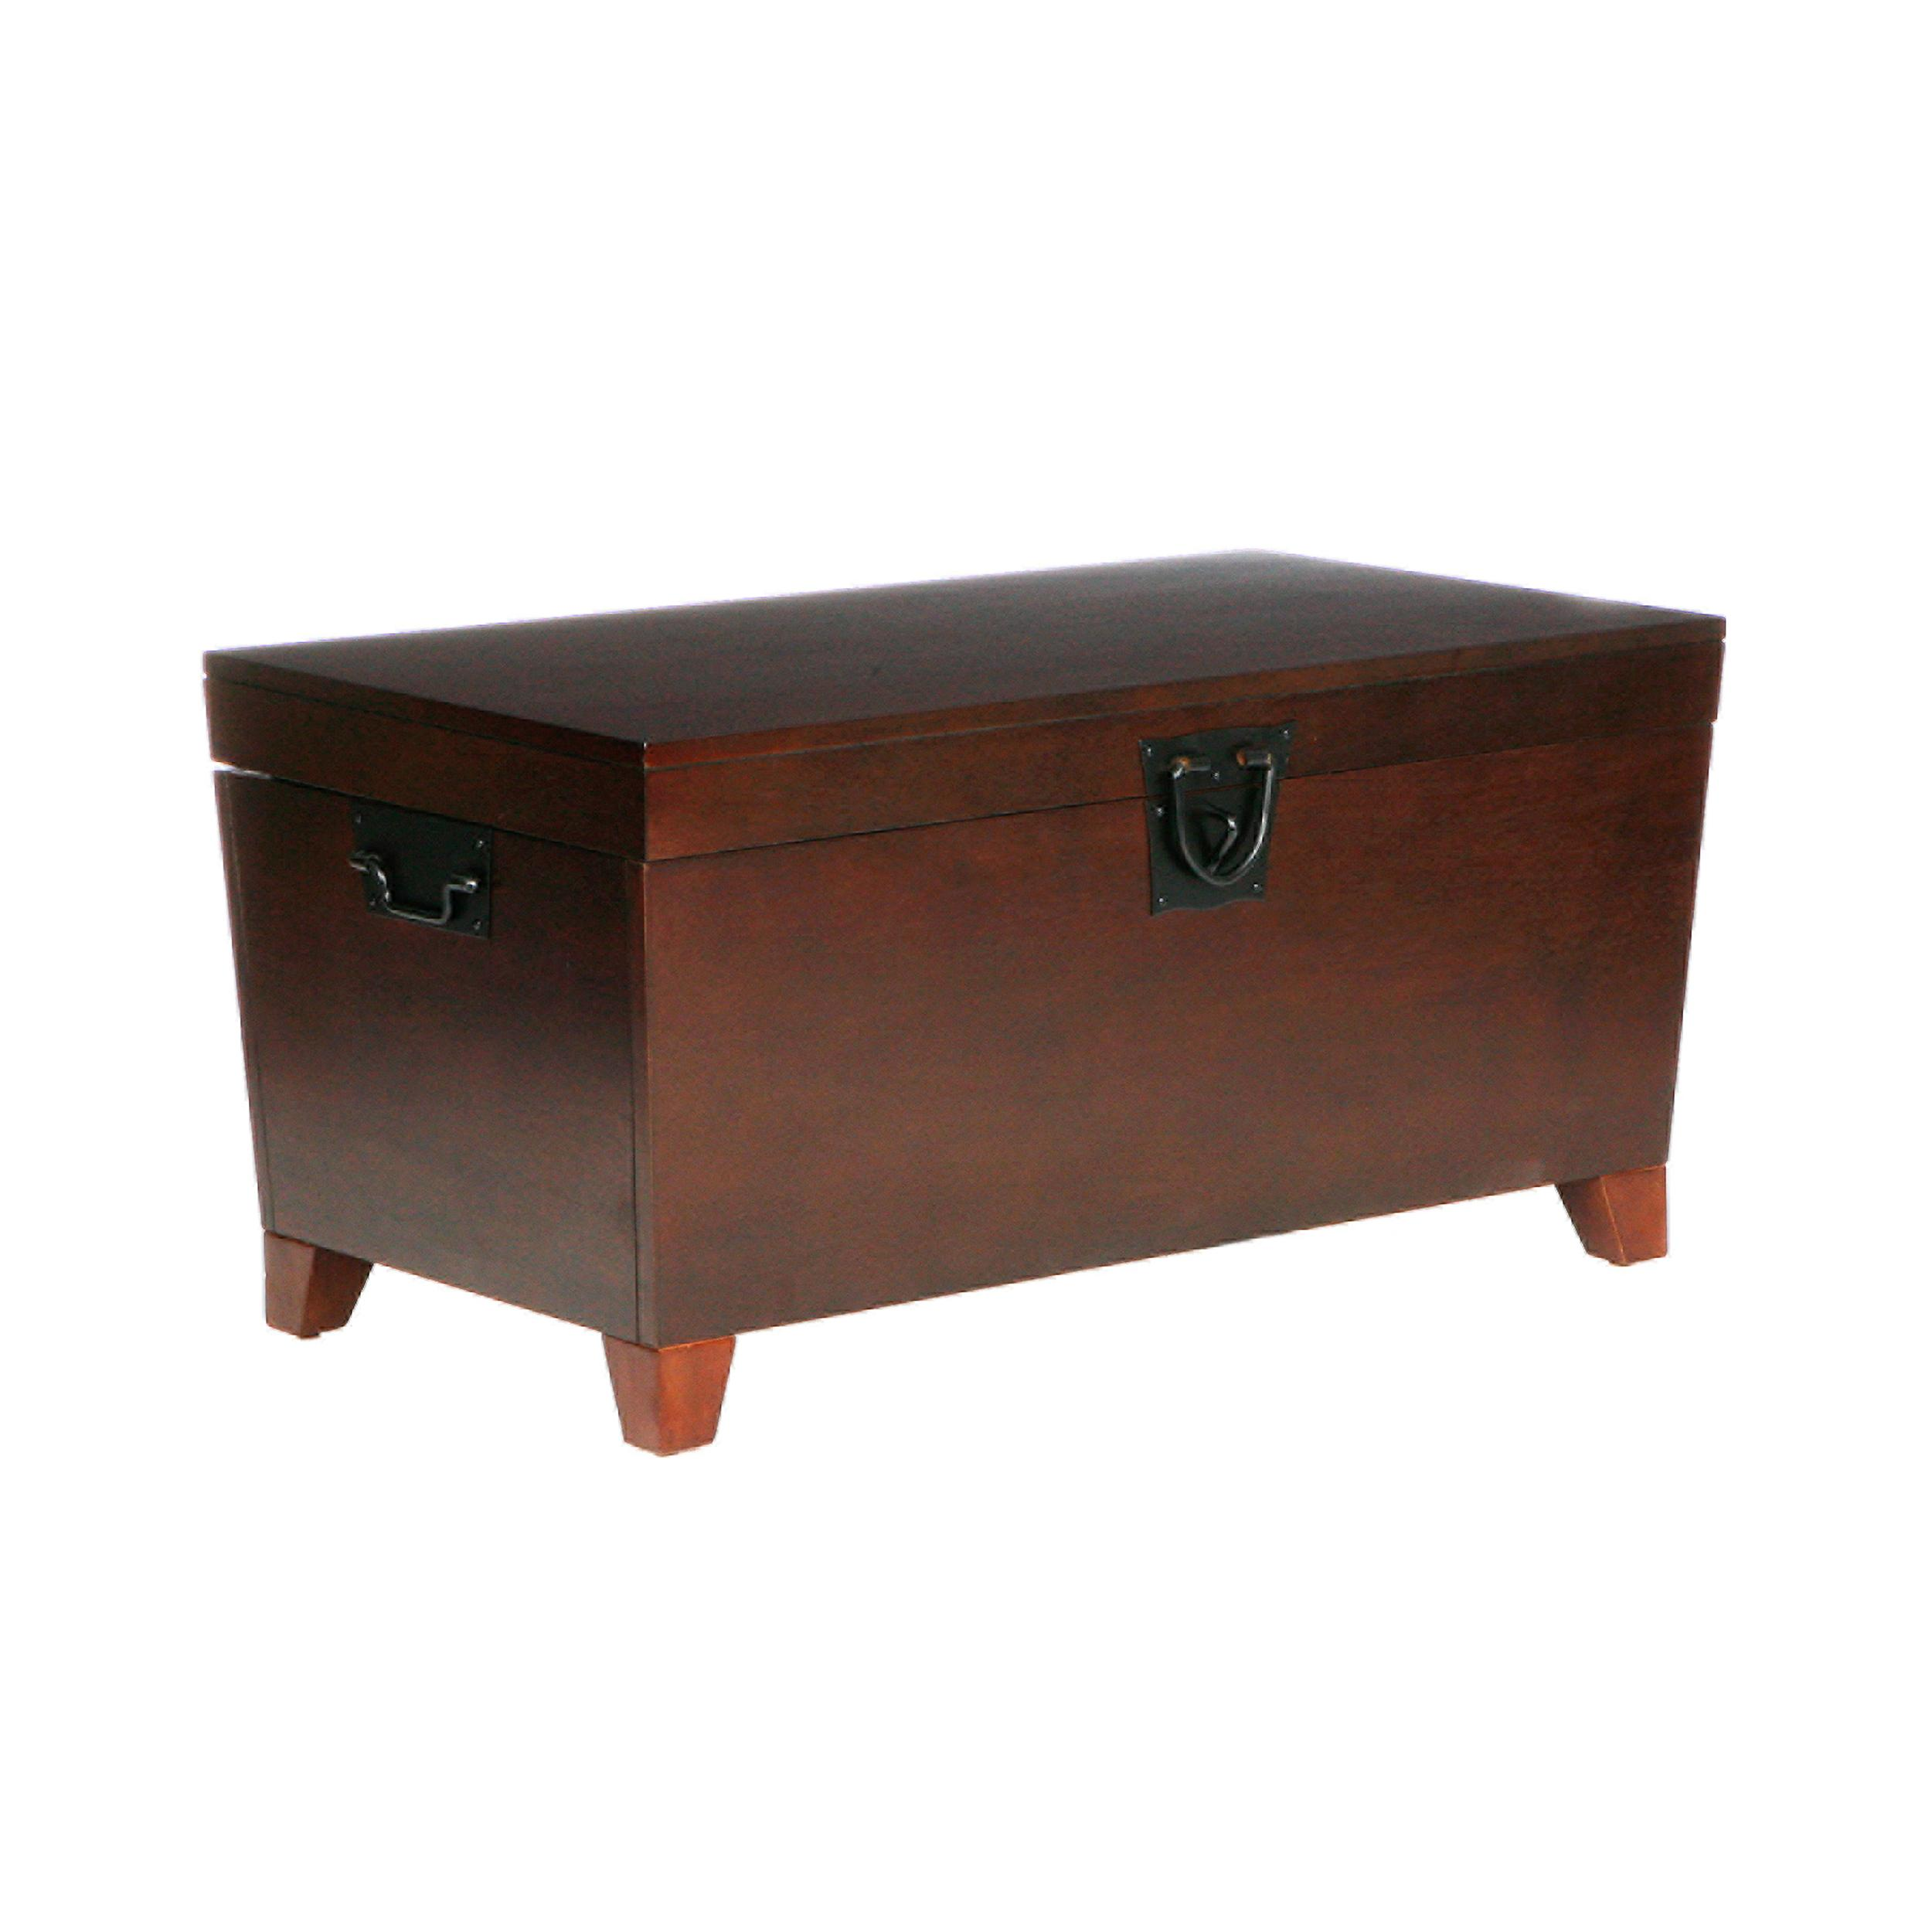 Amazon.com: Southern Enterprises Pyramid Storage Trunk